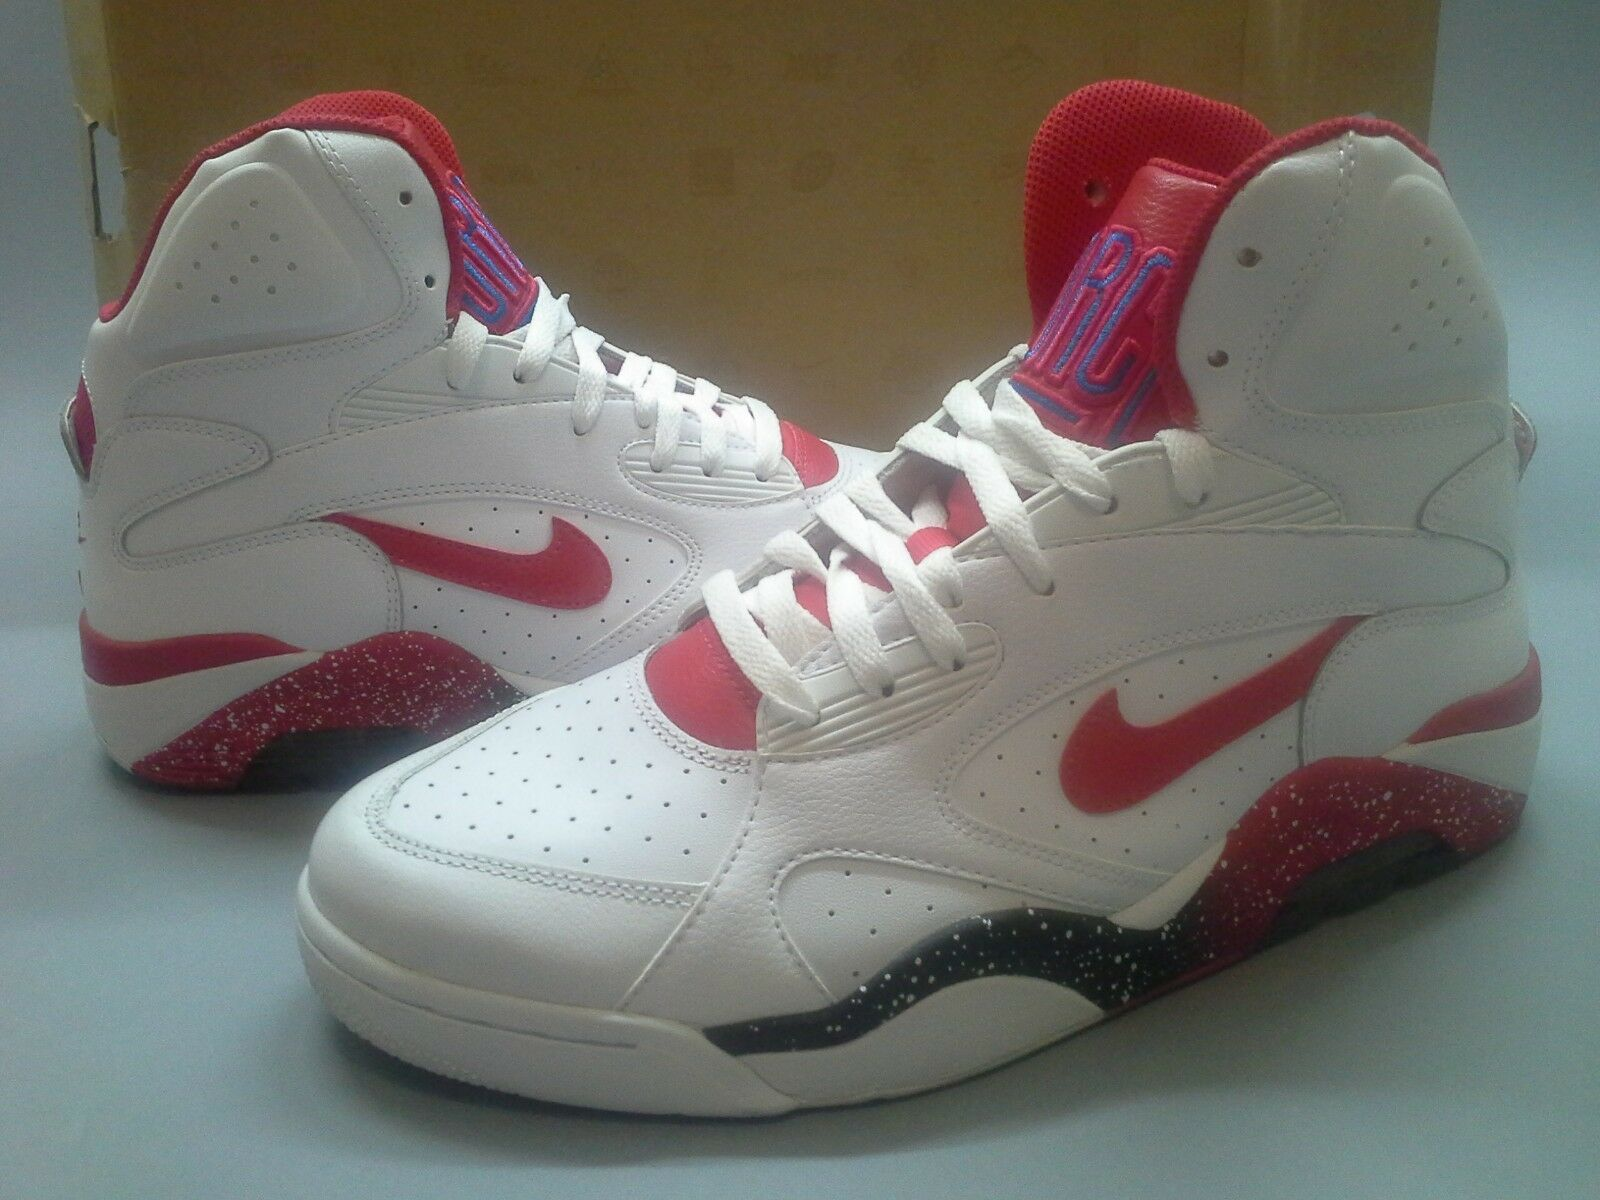 Nike Air Force 180 Mid White Red 537330 101 Barkley Bulls Robinson One Casual wild